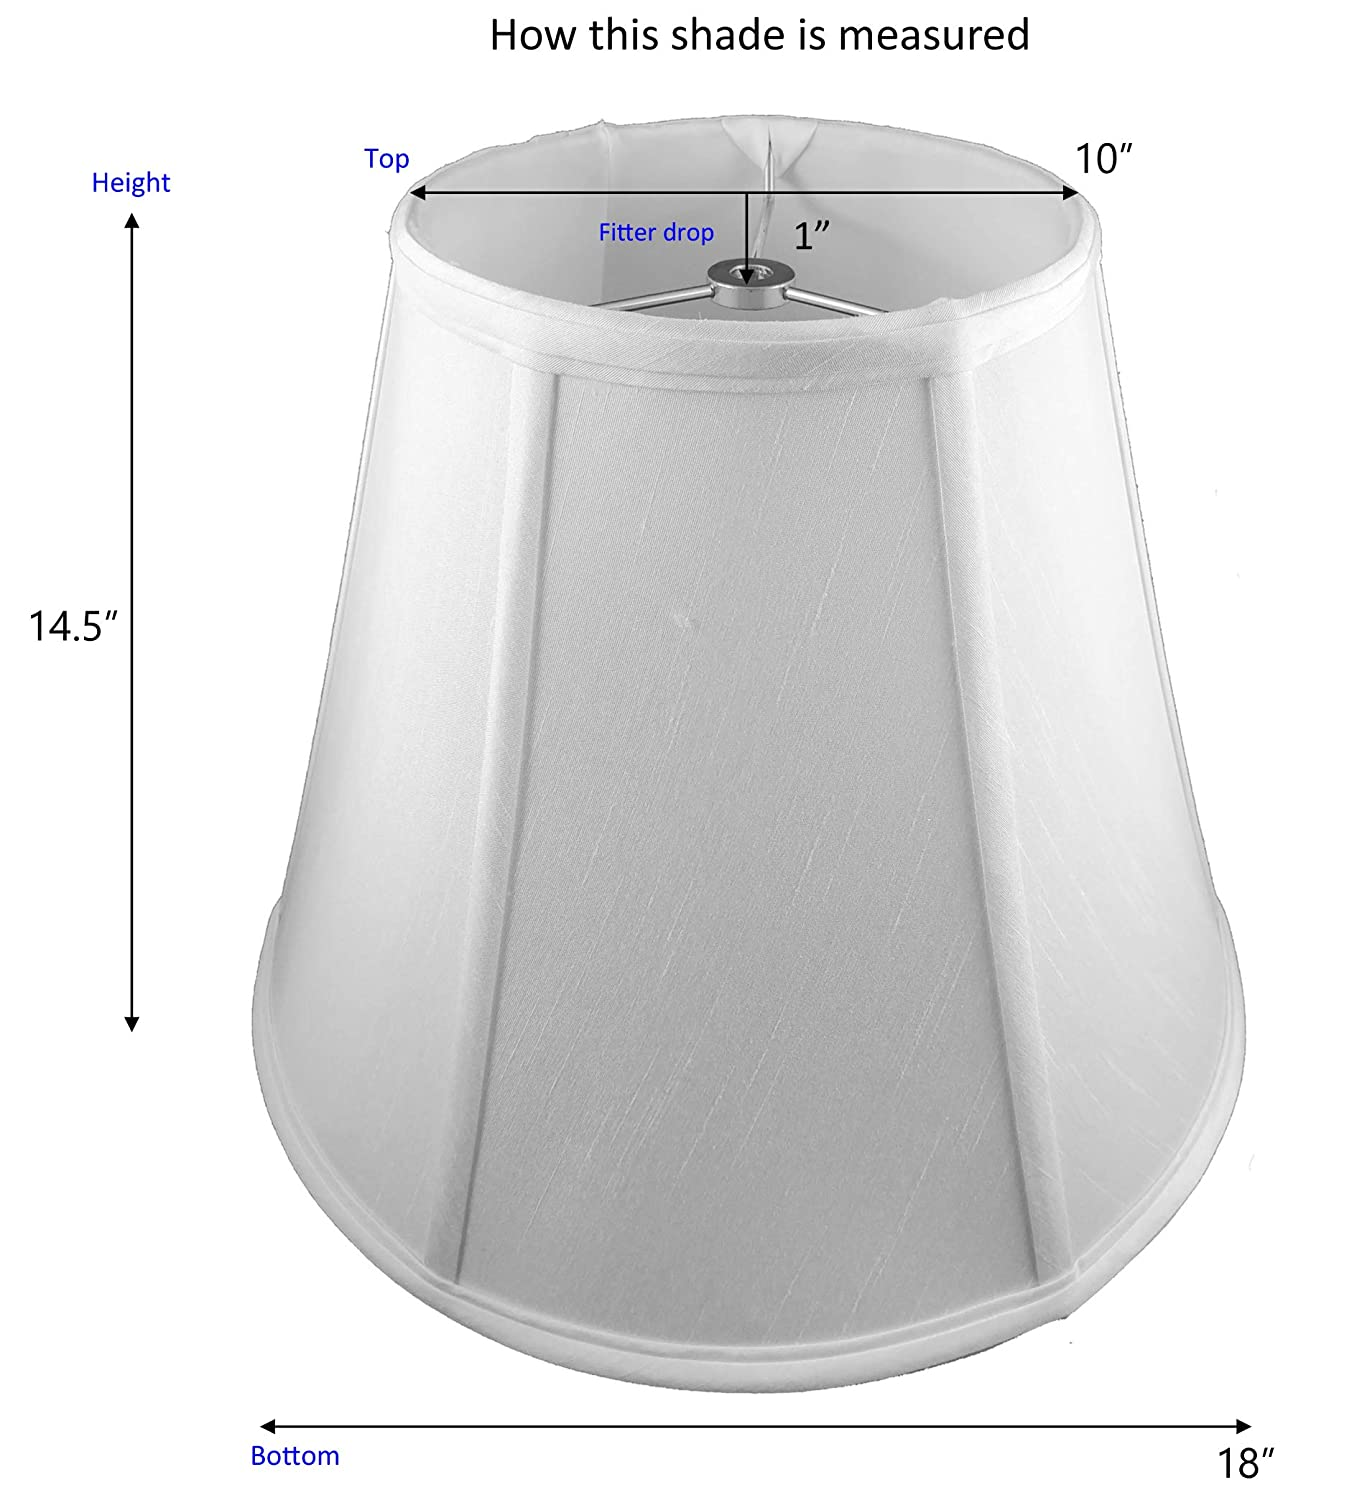 Off-White American Pride Lampshade Co Shantung 19-78090016 Round Soft Tailored Lampshade